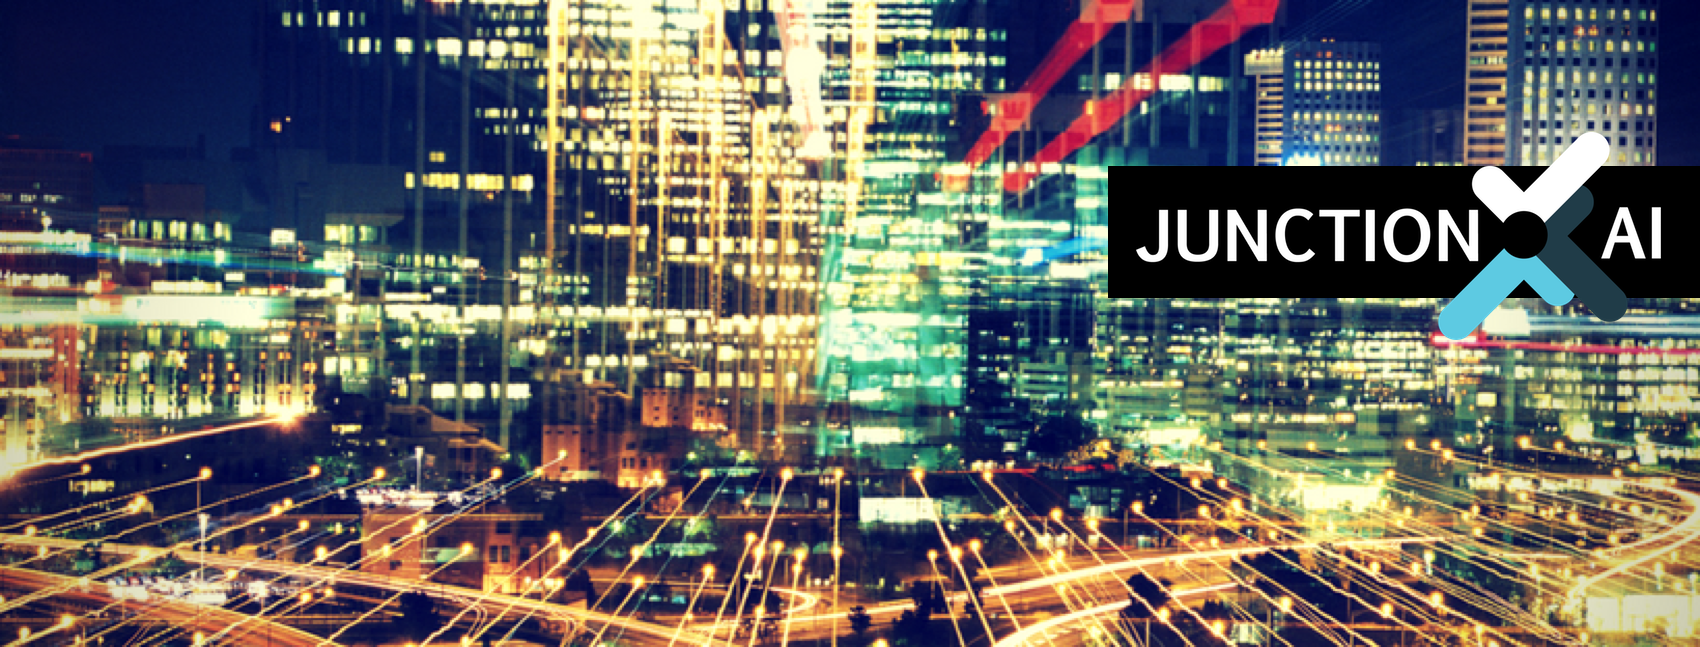 Junction AI - AI Marketing Solutions for Travel brands and businesses